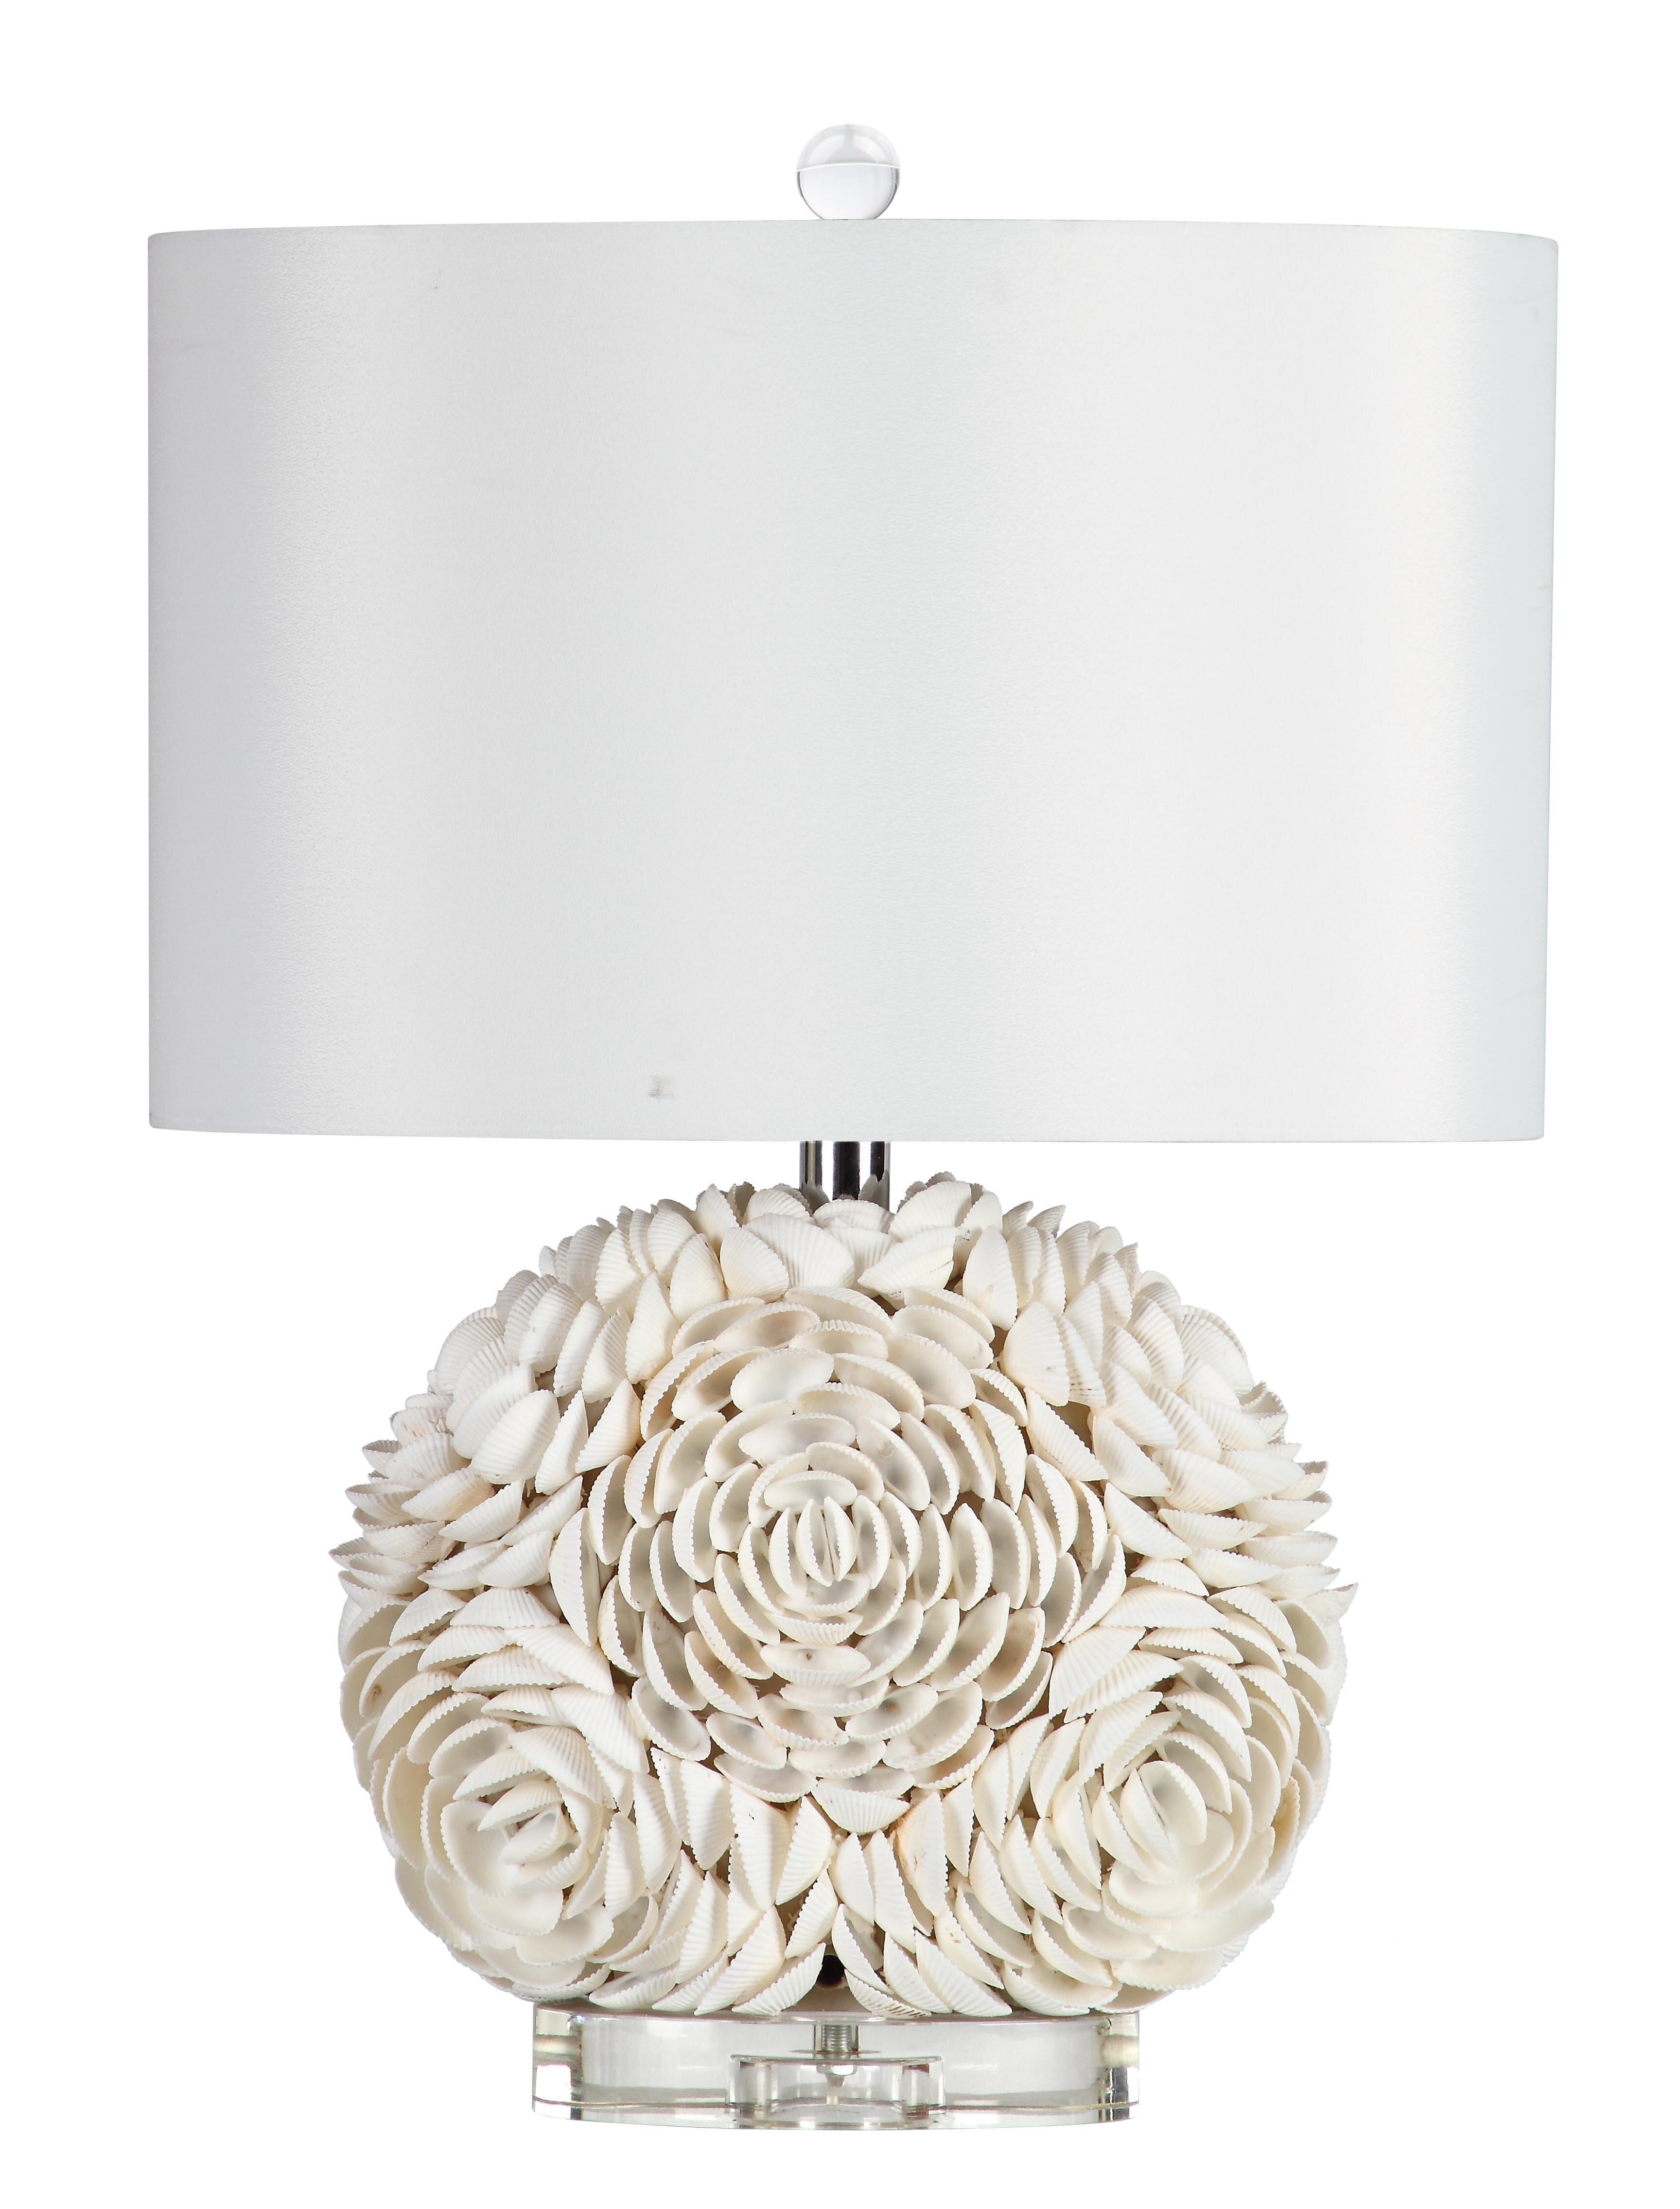 Marianahome seashell peony 215quot table lamp wayfair for Best brand of paint for kitchen cabinets with wall art for kids bathroom